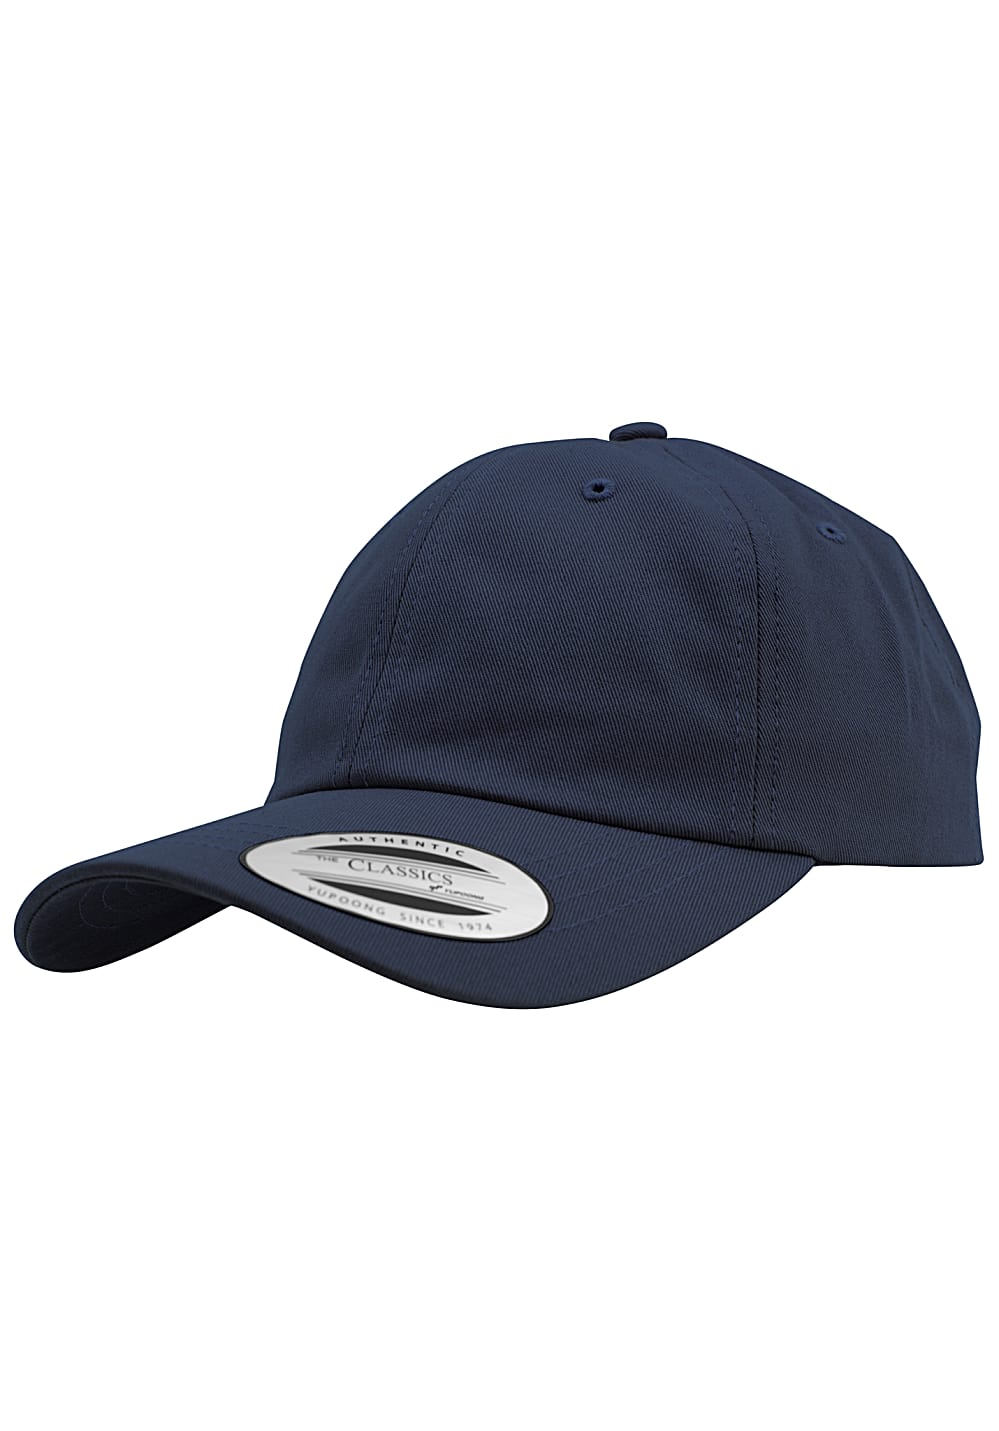 Flexfit Low Profile Cotton Twill Snapback Cap - Blau - OneSize